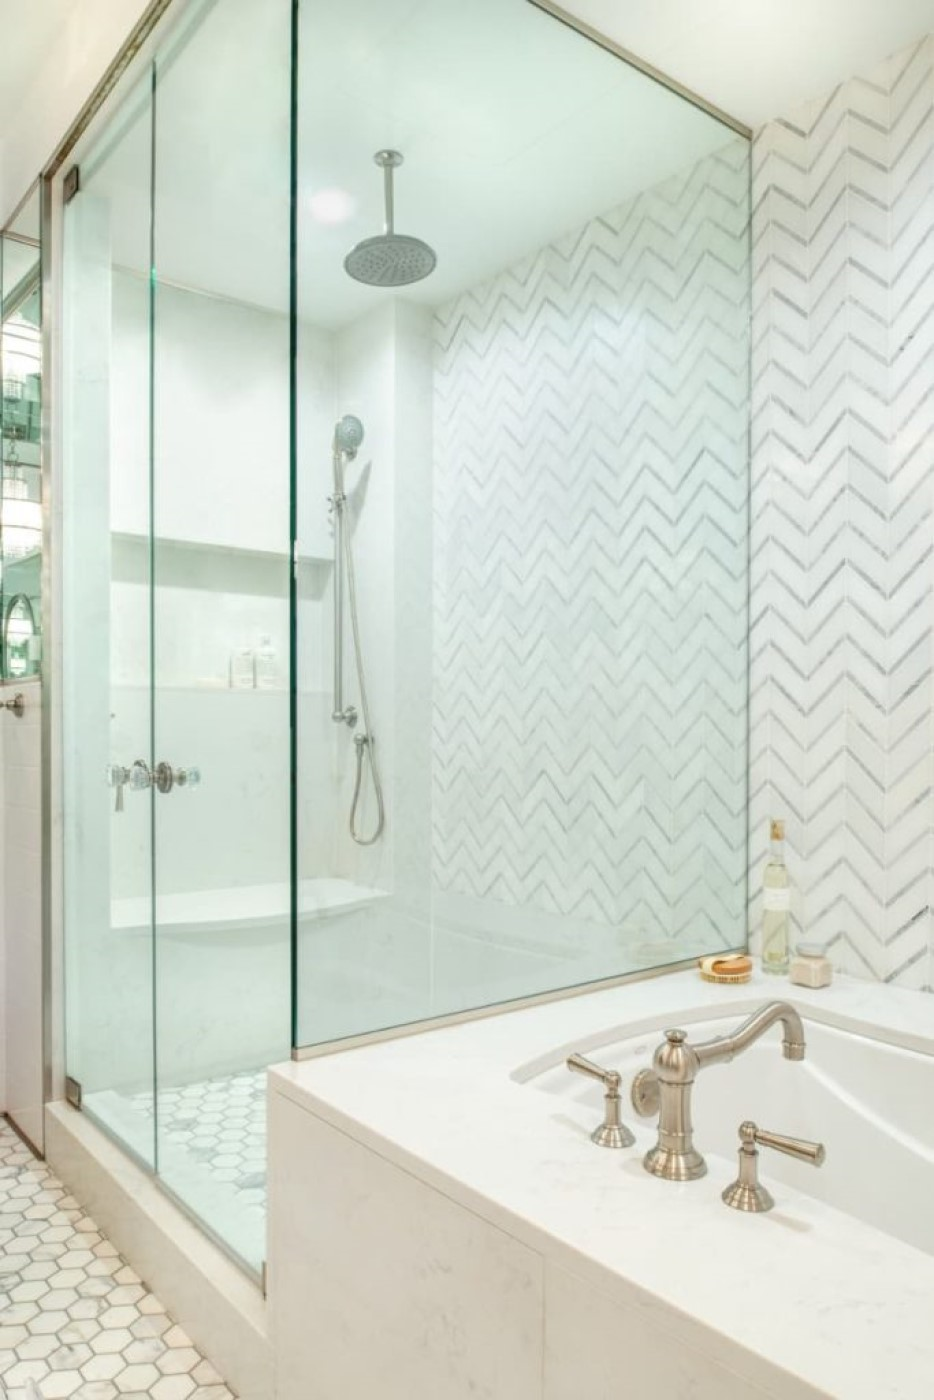 The glass shower is generously sized, with a bench seat, a large nook for bottles, and both rain and hand-held shower heads.